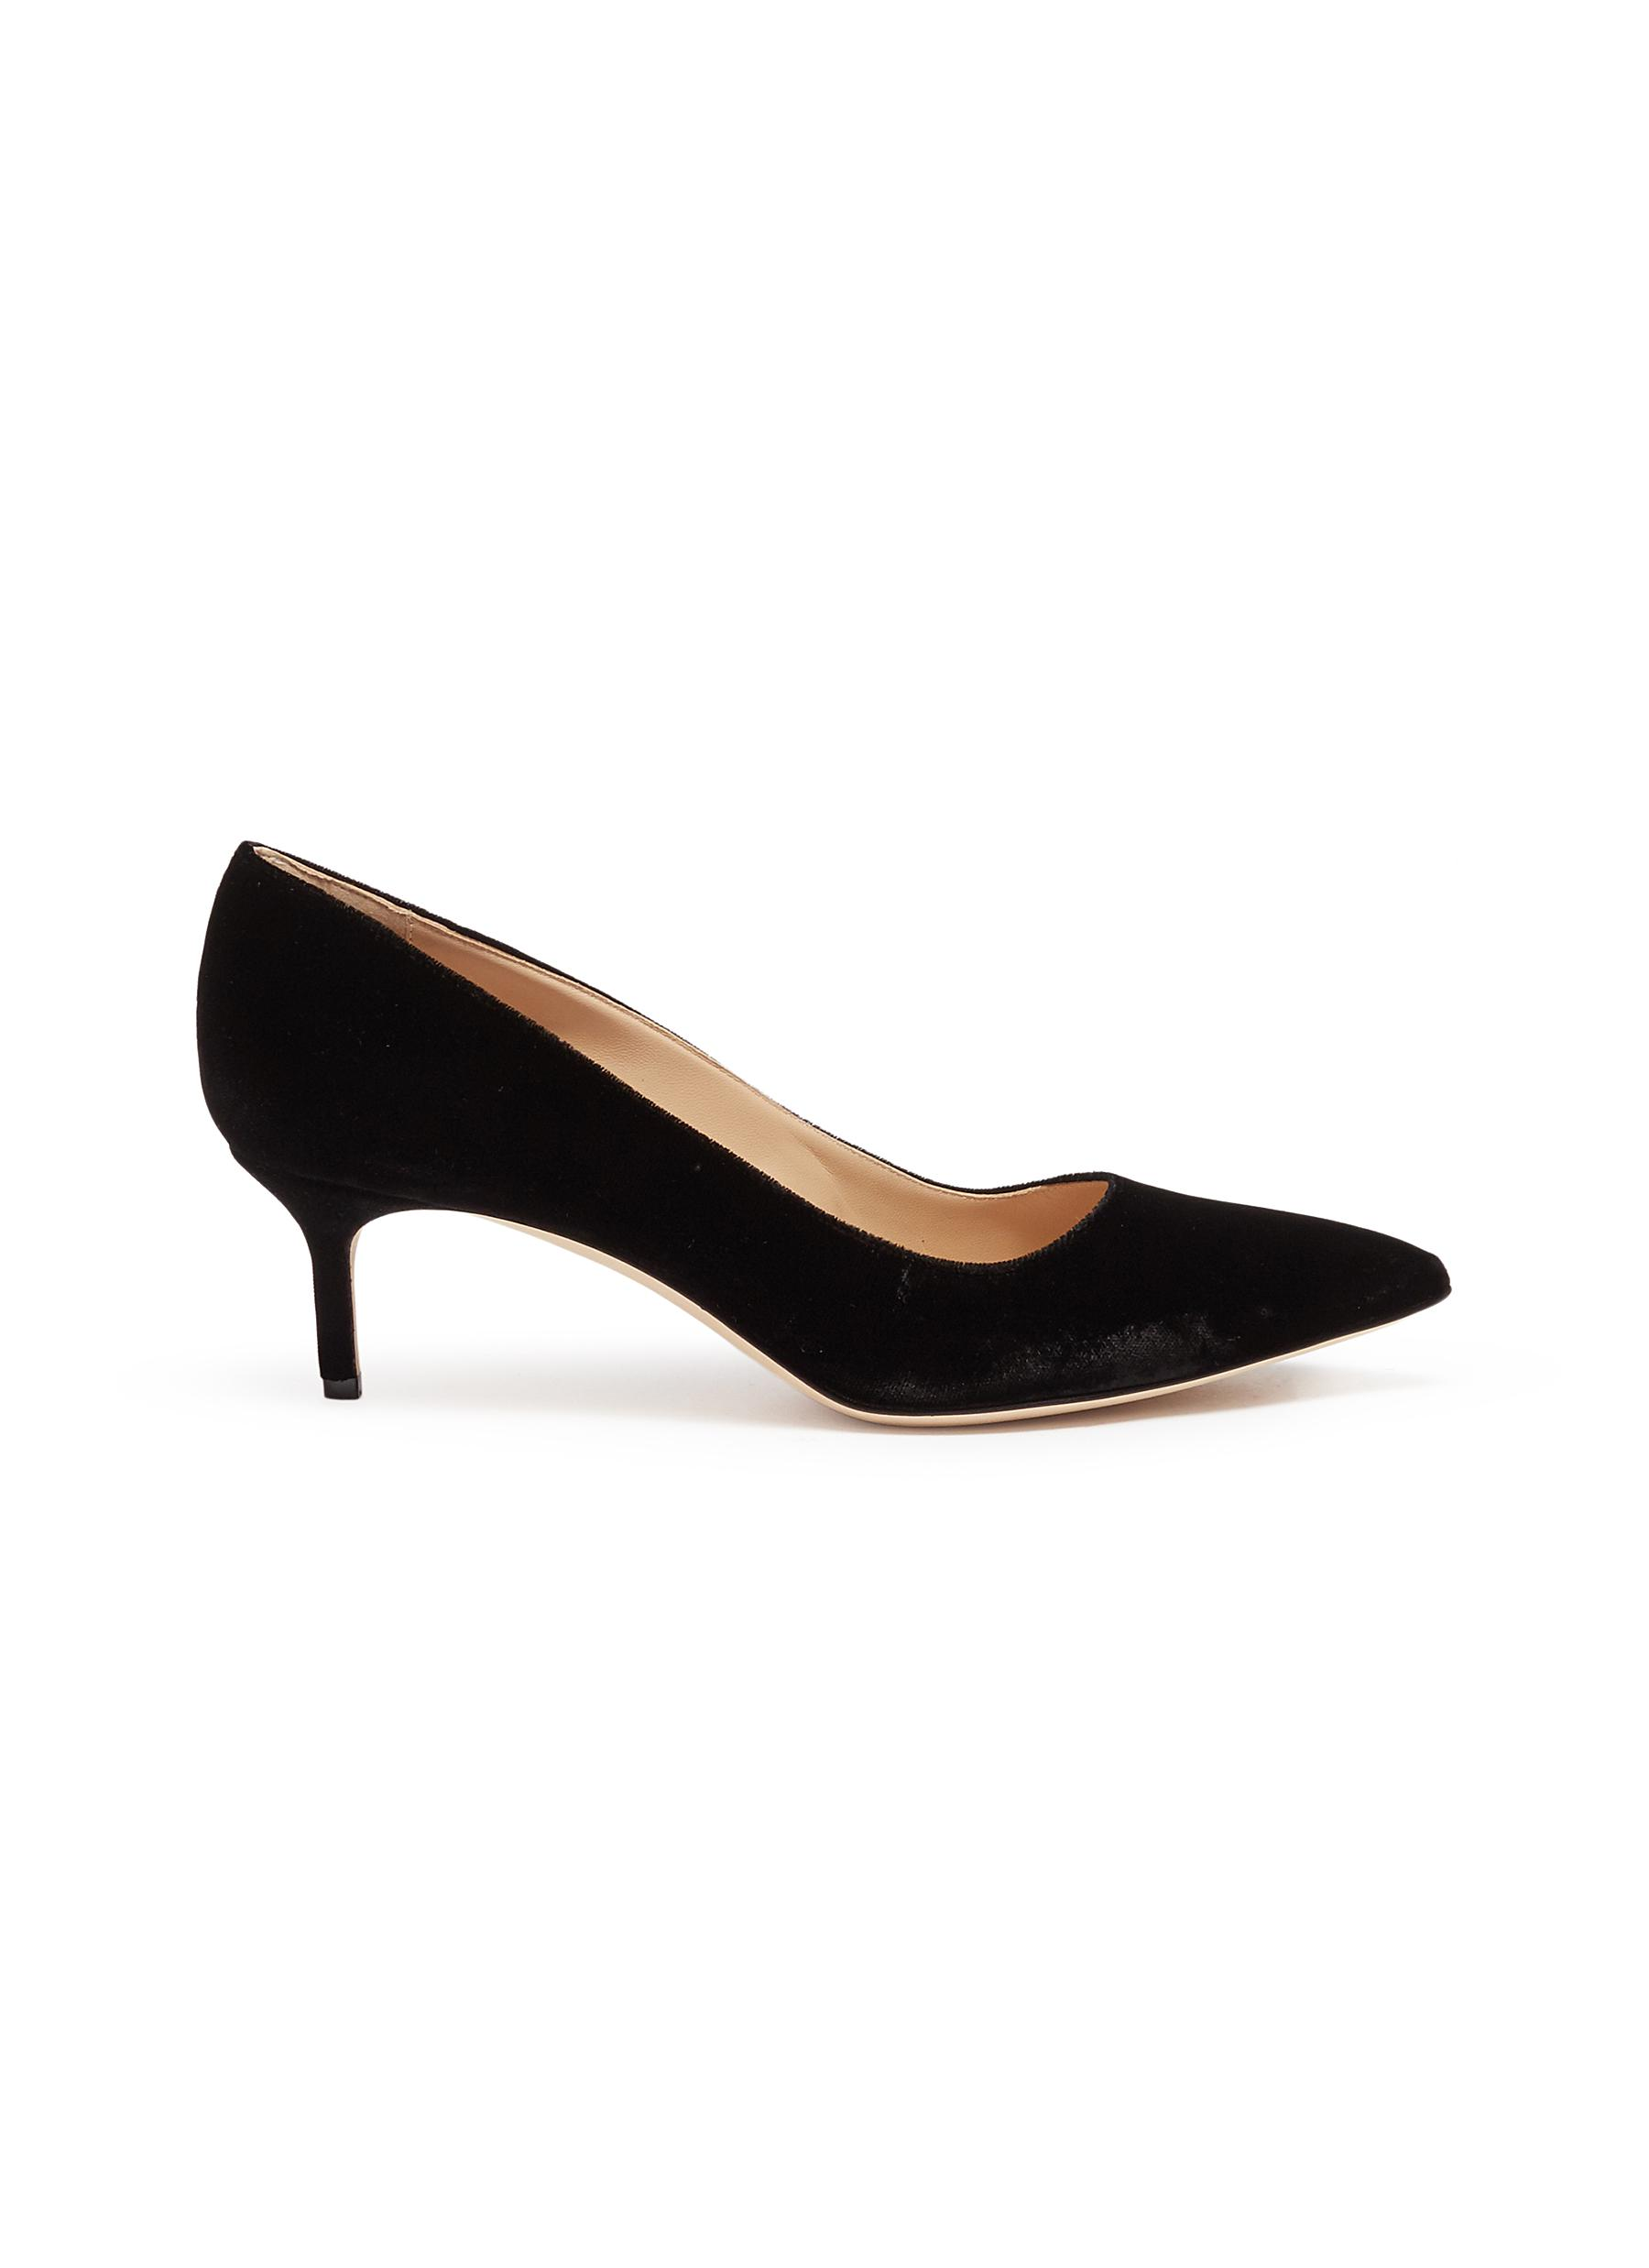 BB 50 velvet pumps by Manolo Blahnik